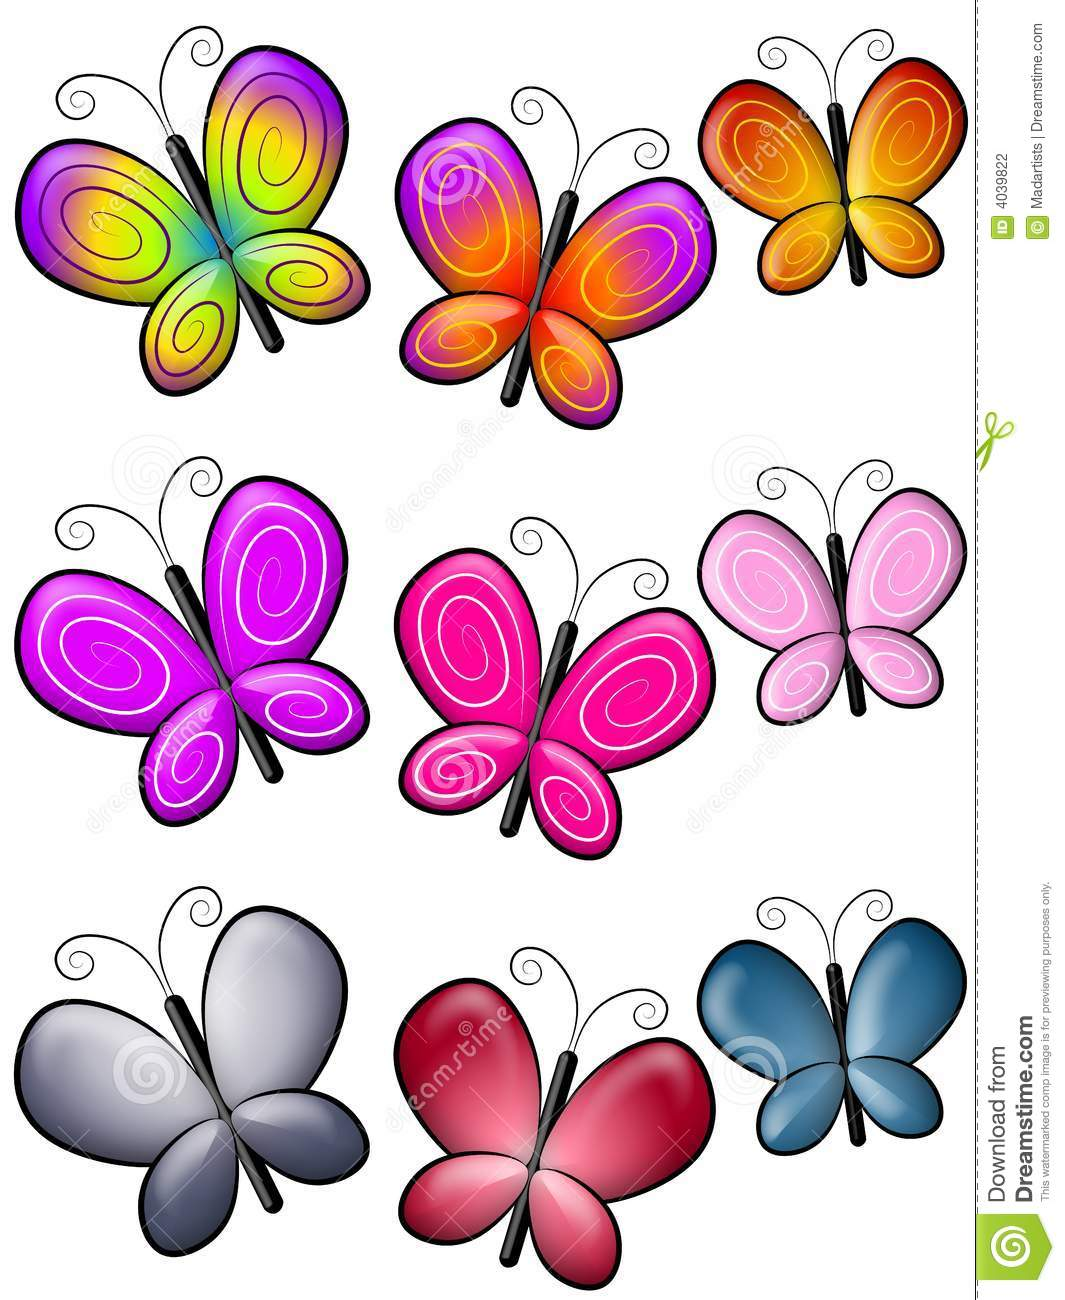 Butterfly Images Clip Art : butterfly, images, Various, Colourful, Butterflies, Stock, Illustration, Assorted,, Clip:, 4039822